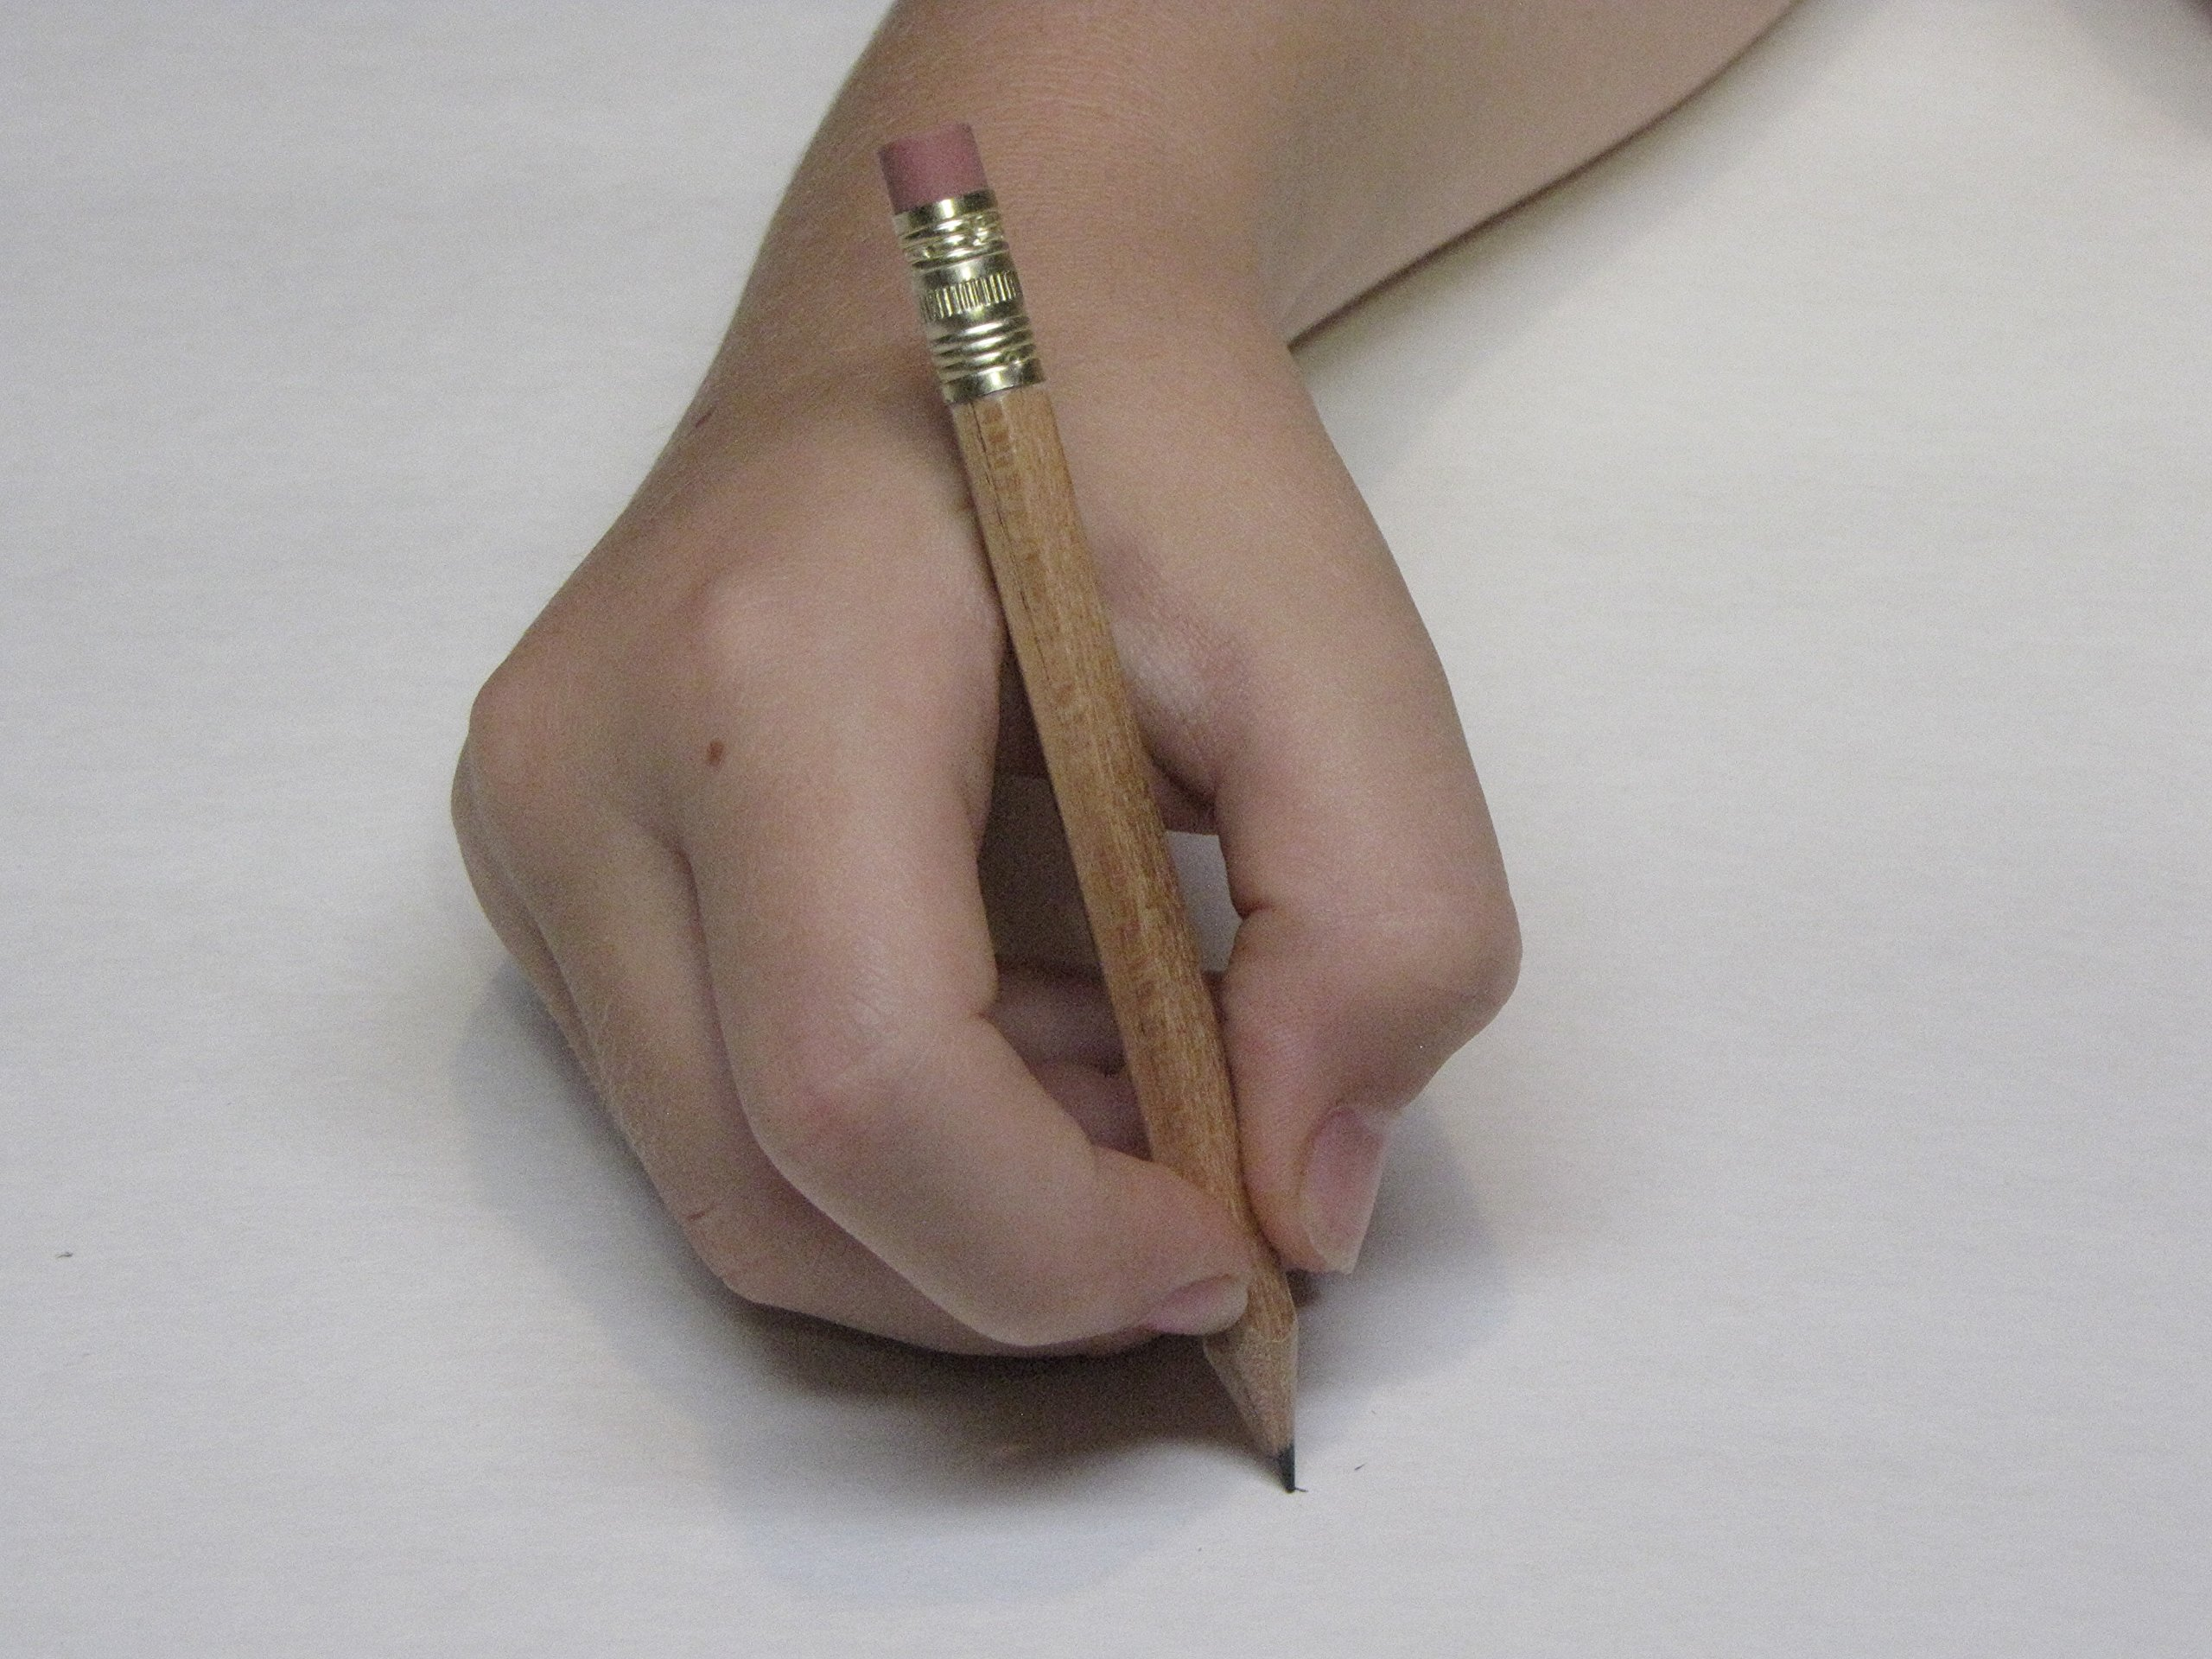 Half Pencil with Eraser, Golf, Events, School, Hexagon, #2, Sharpened, Box of 144. Color: Natural Wood Grain